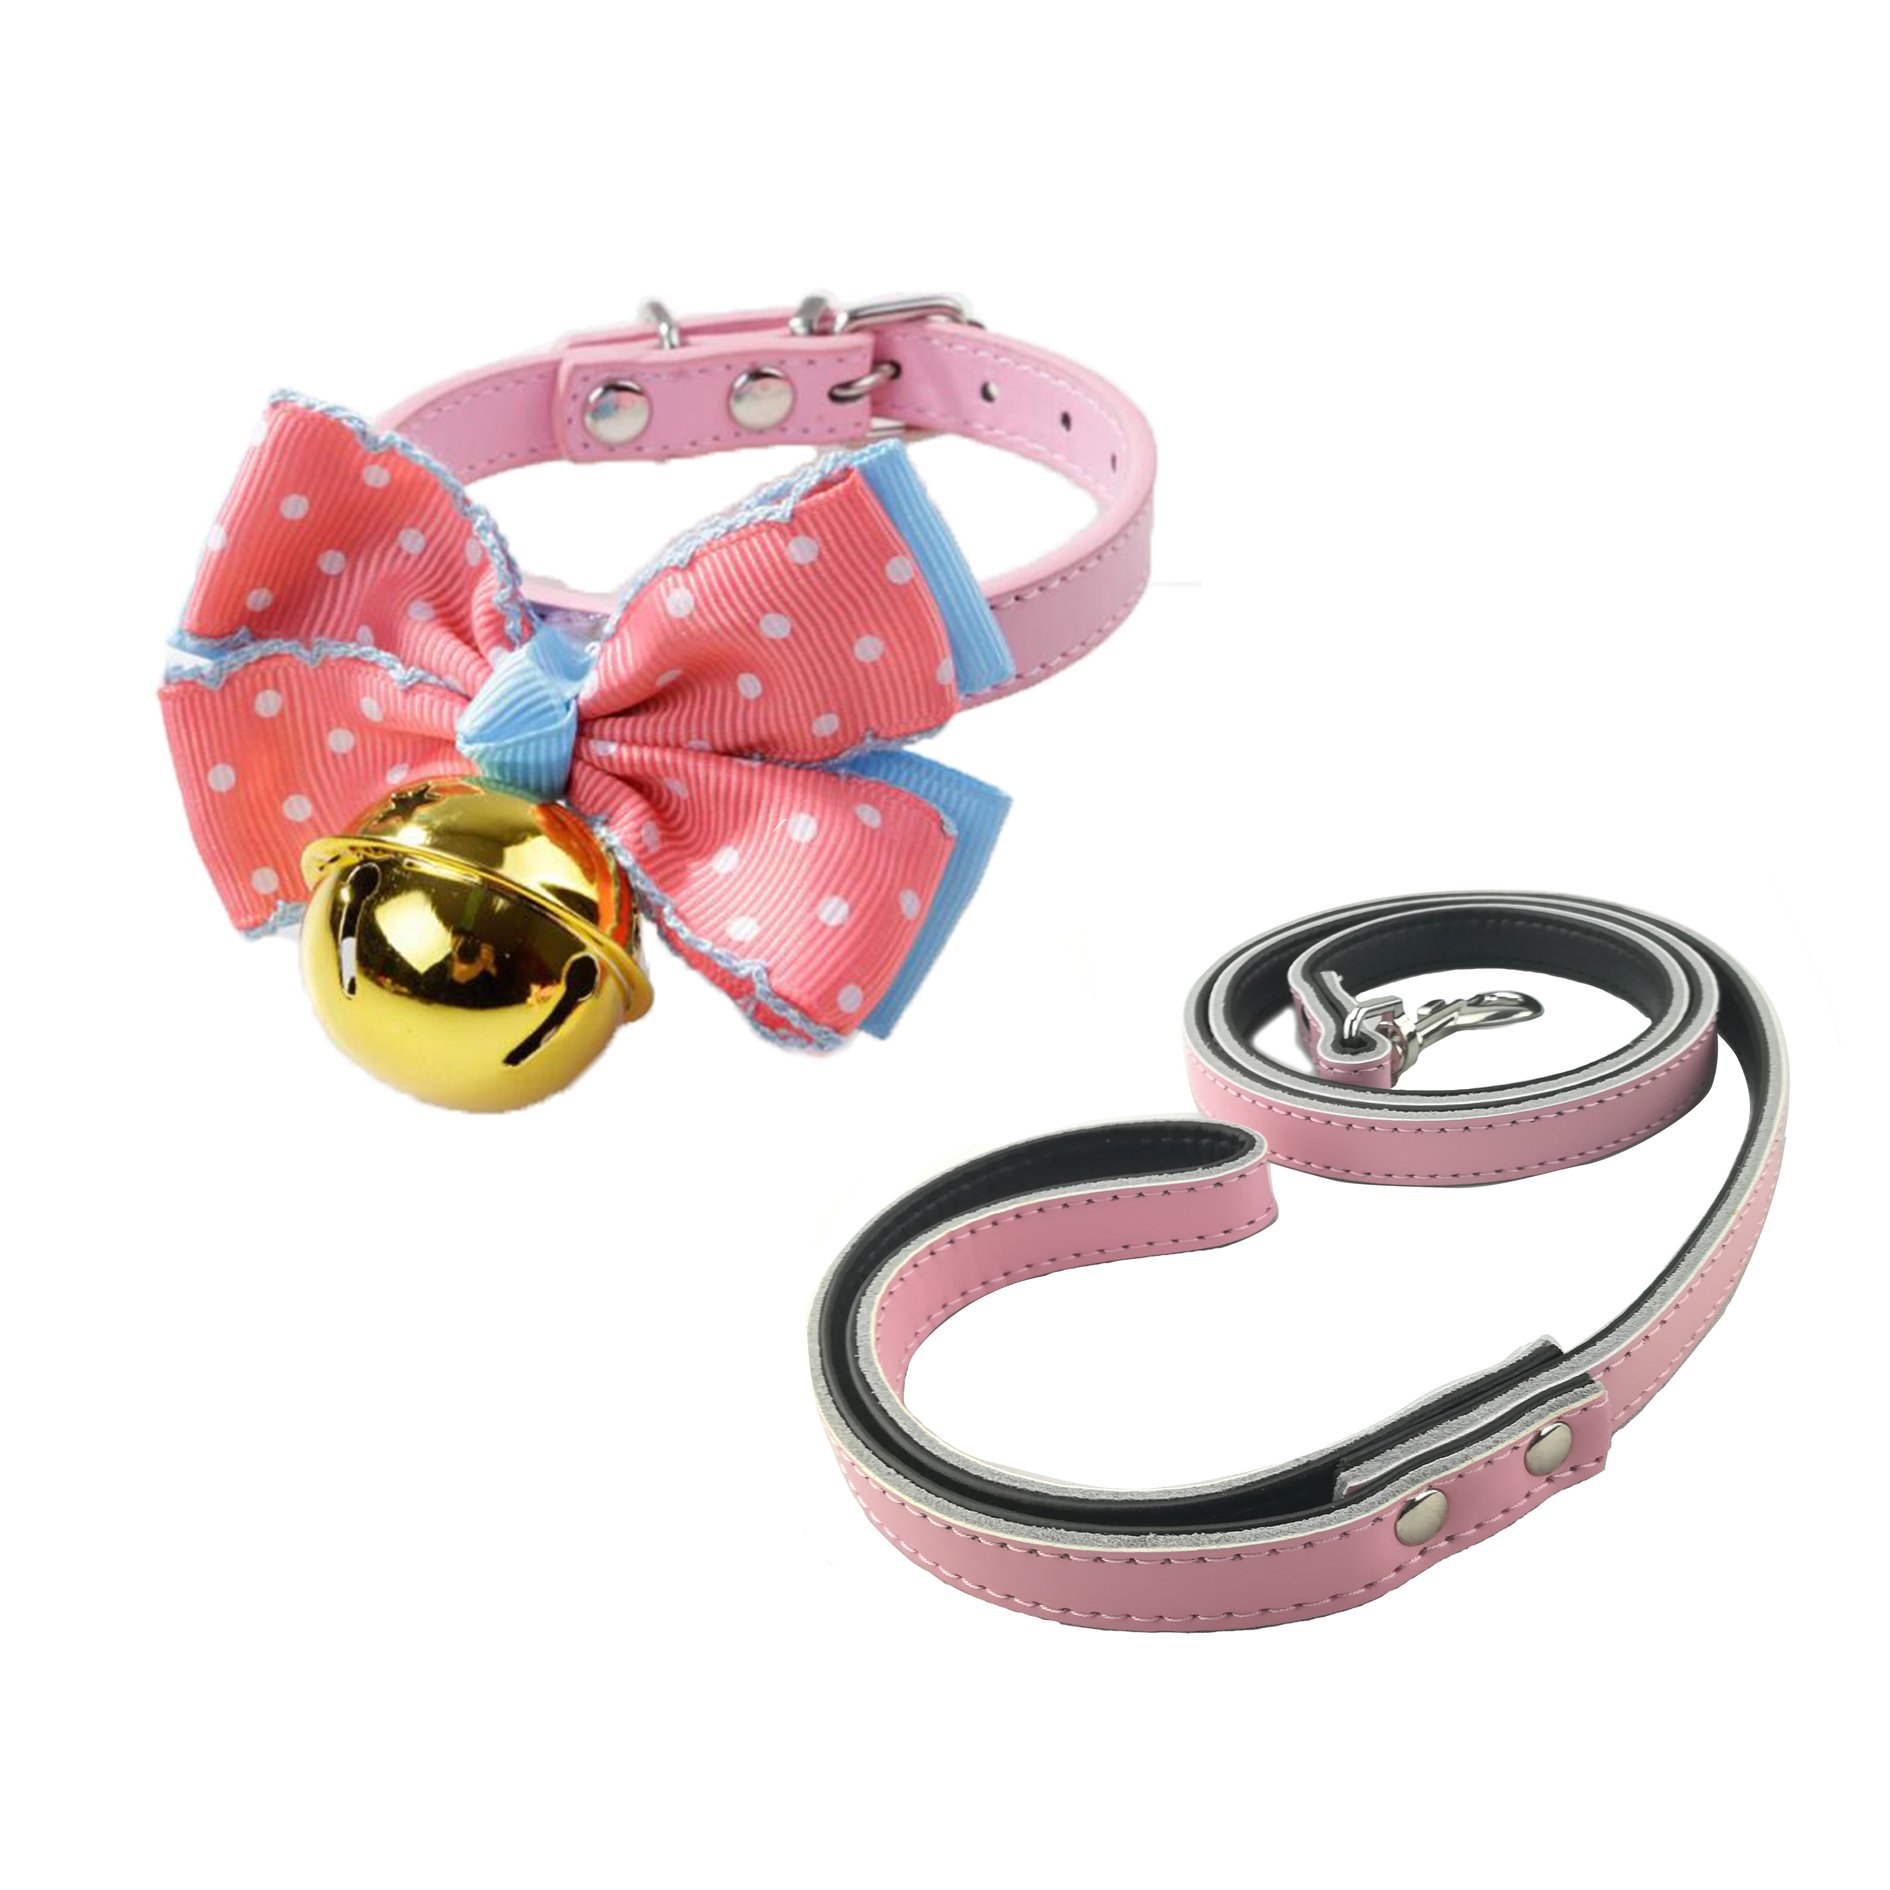 Newtensina Stylish Dog Collars Bow Tie with Gold Bell and Dog Lead Cute Kitten Bells Puppy Bow Tie Collar with Leash for Small Dogs